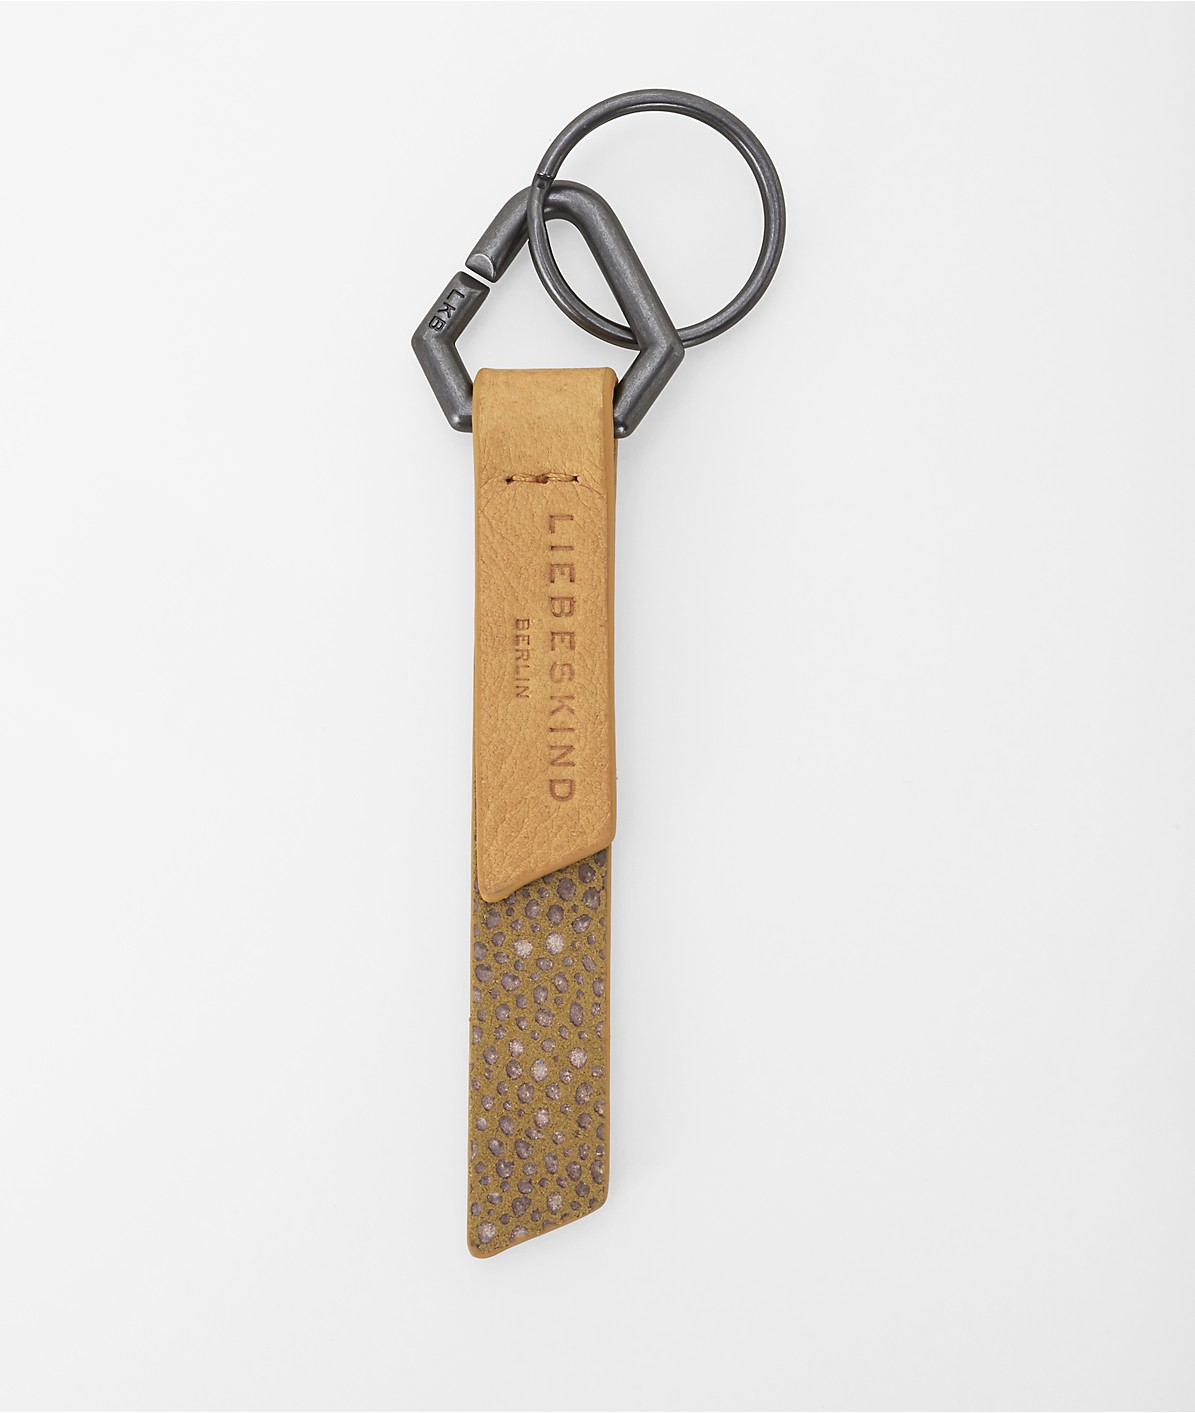 Keyring from liebeskind